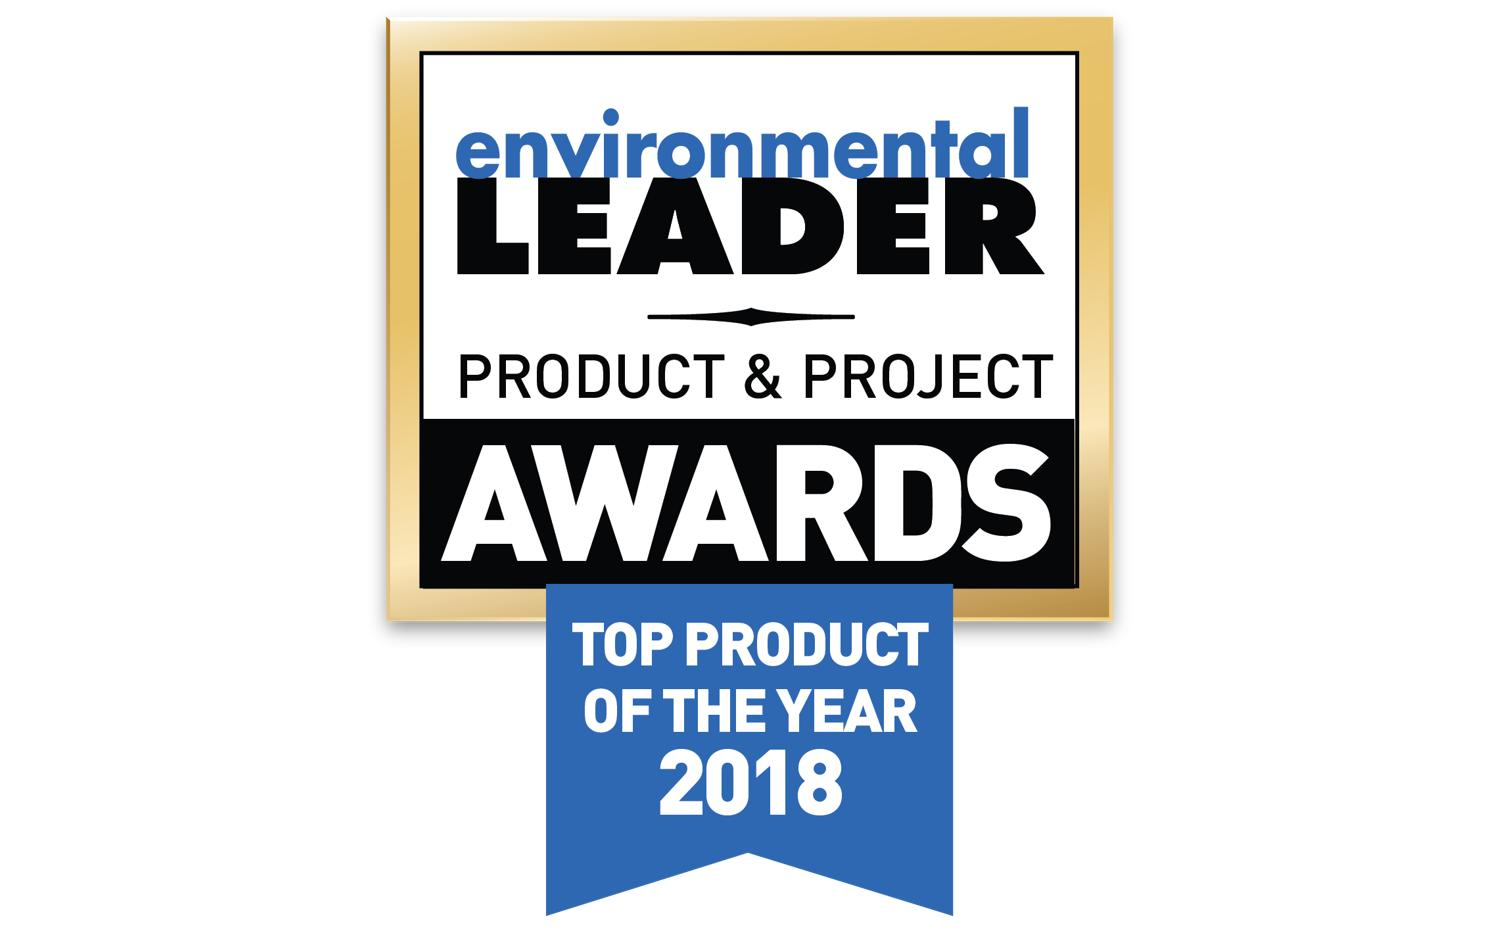 Greenstone's software named Top Product of the Year by Environmental Leader